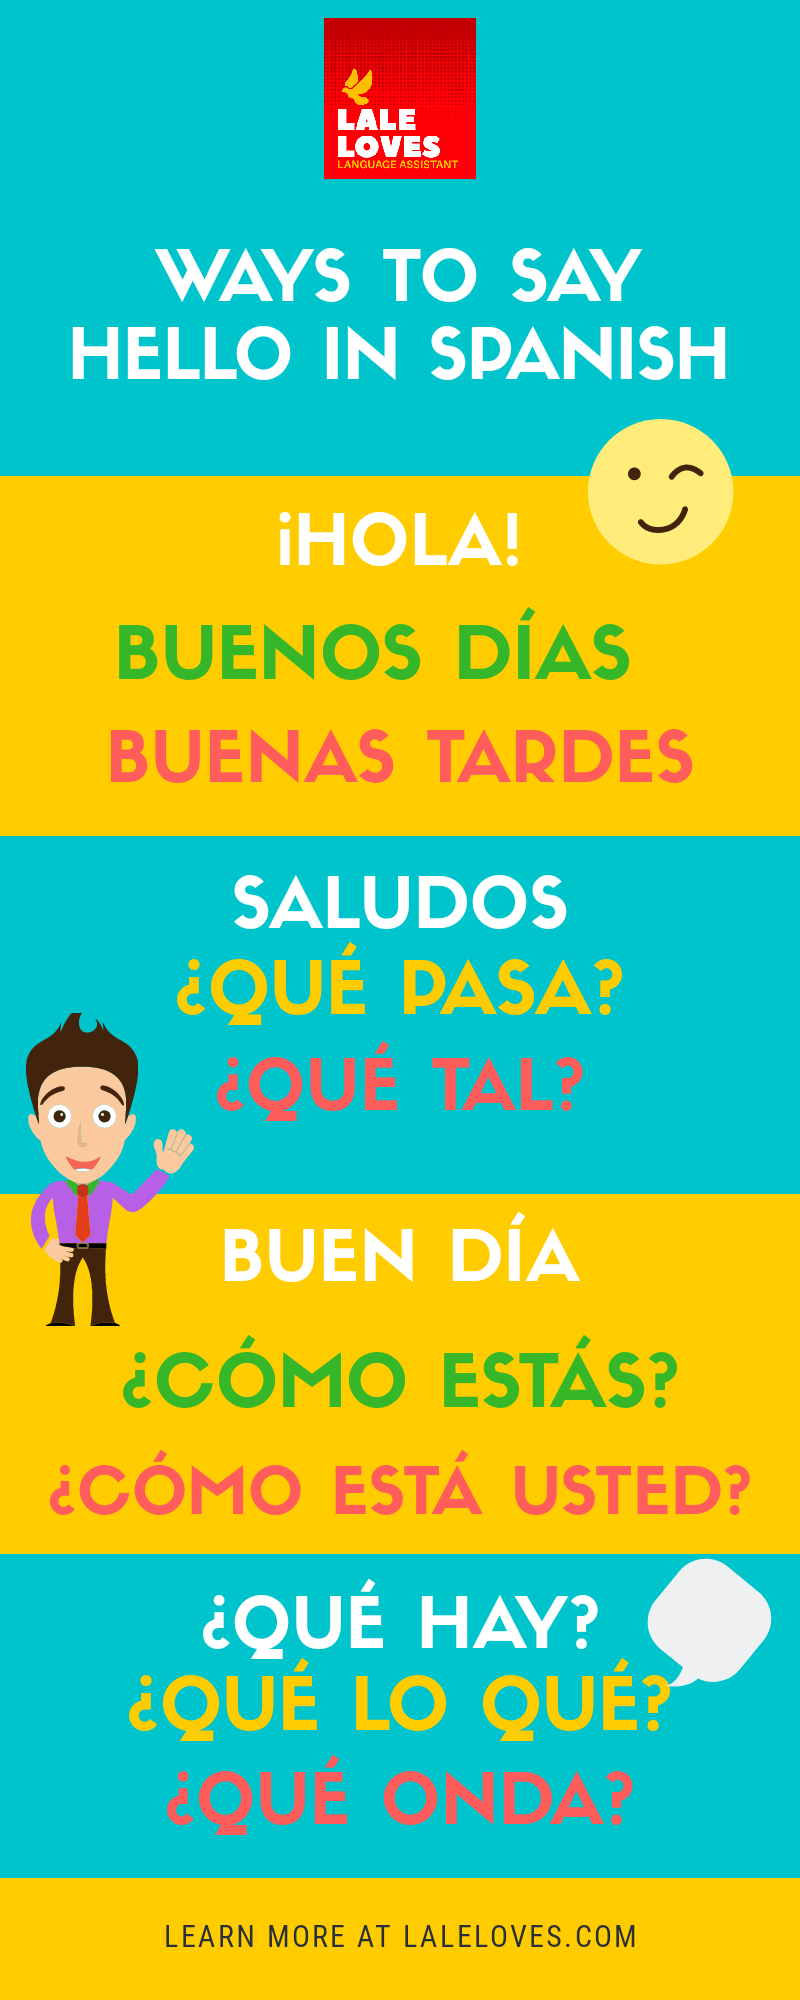 10 Ways To Say Hello In Spanish Say Hello In Spanish Hello In Spanish Ways To Say Hello